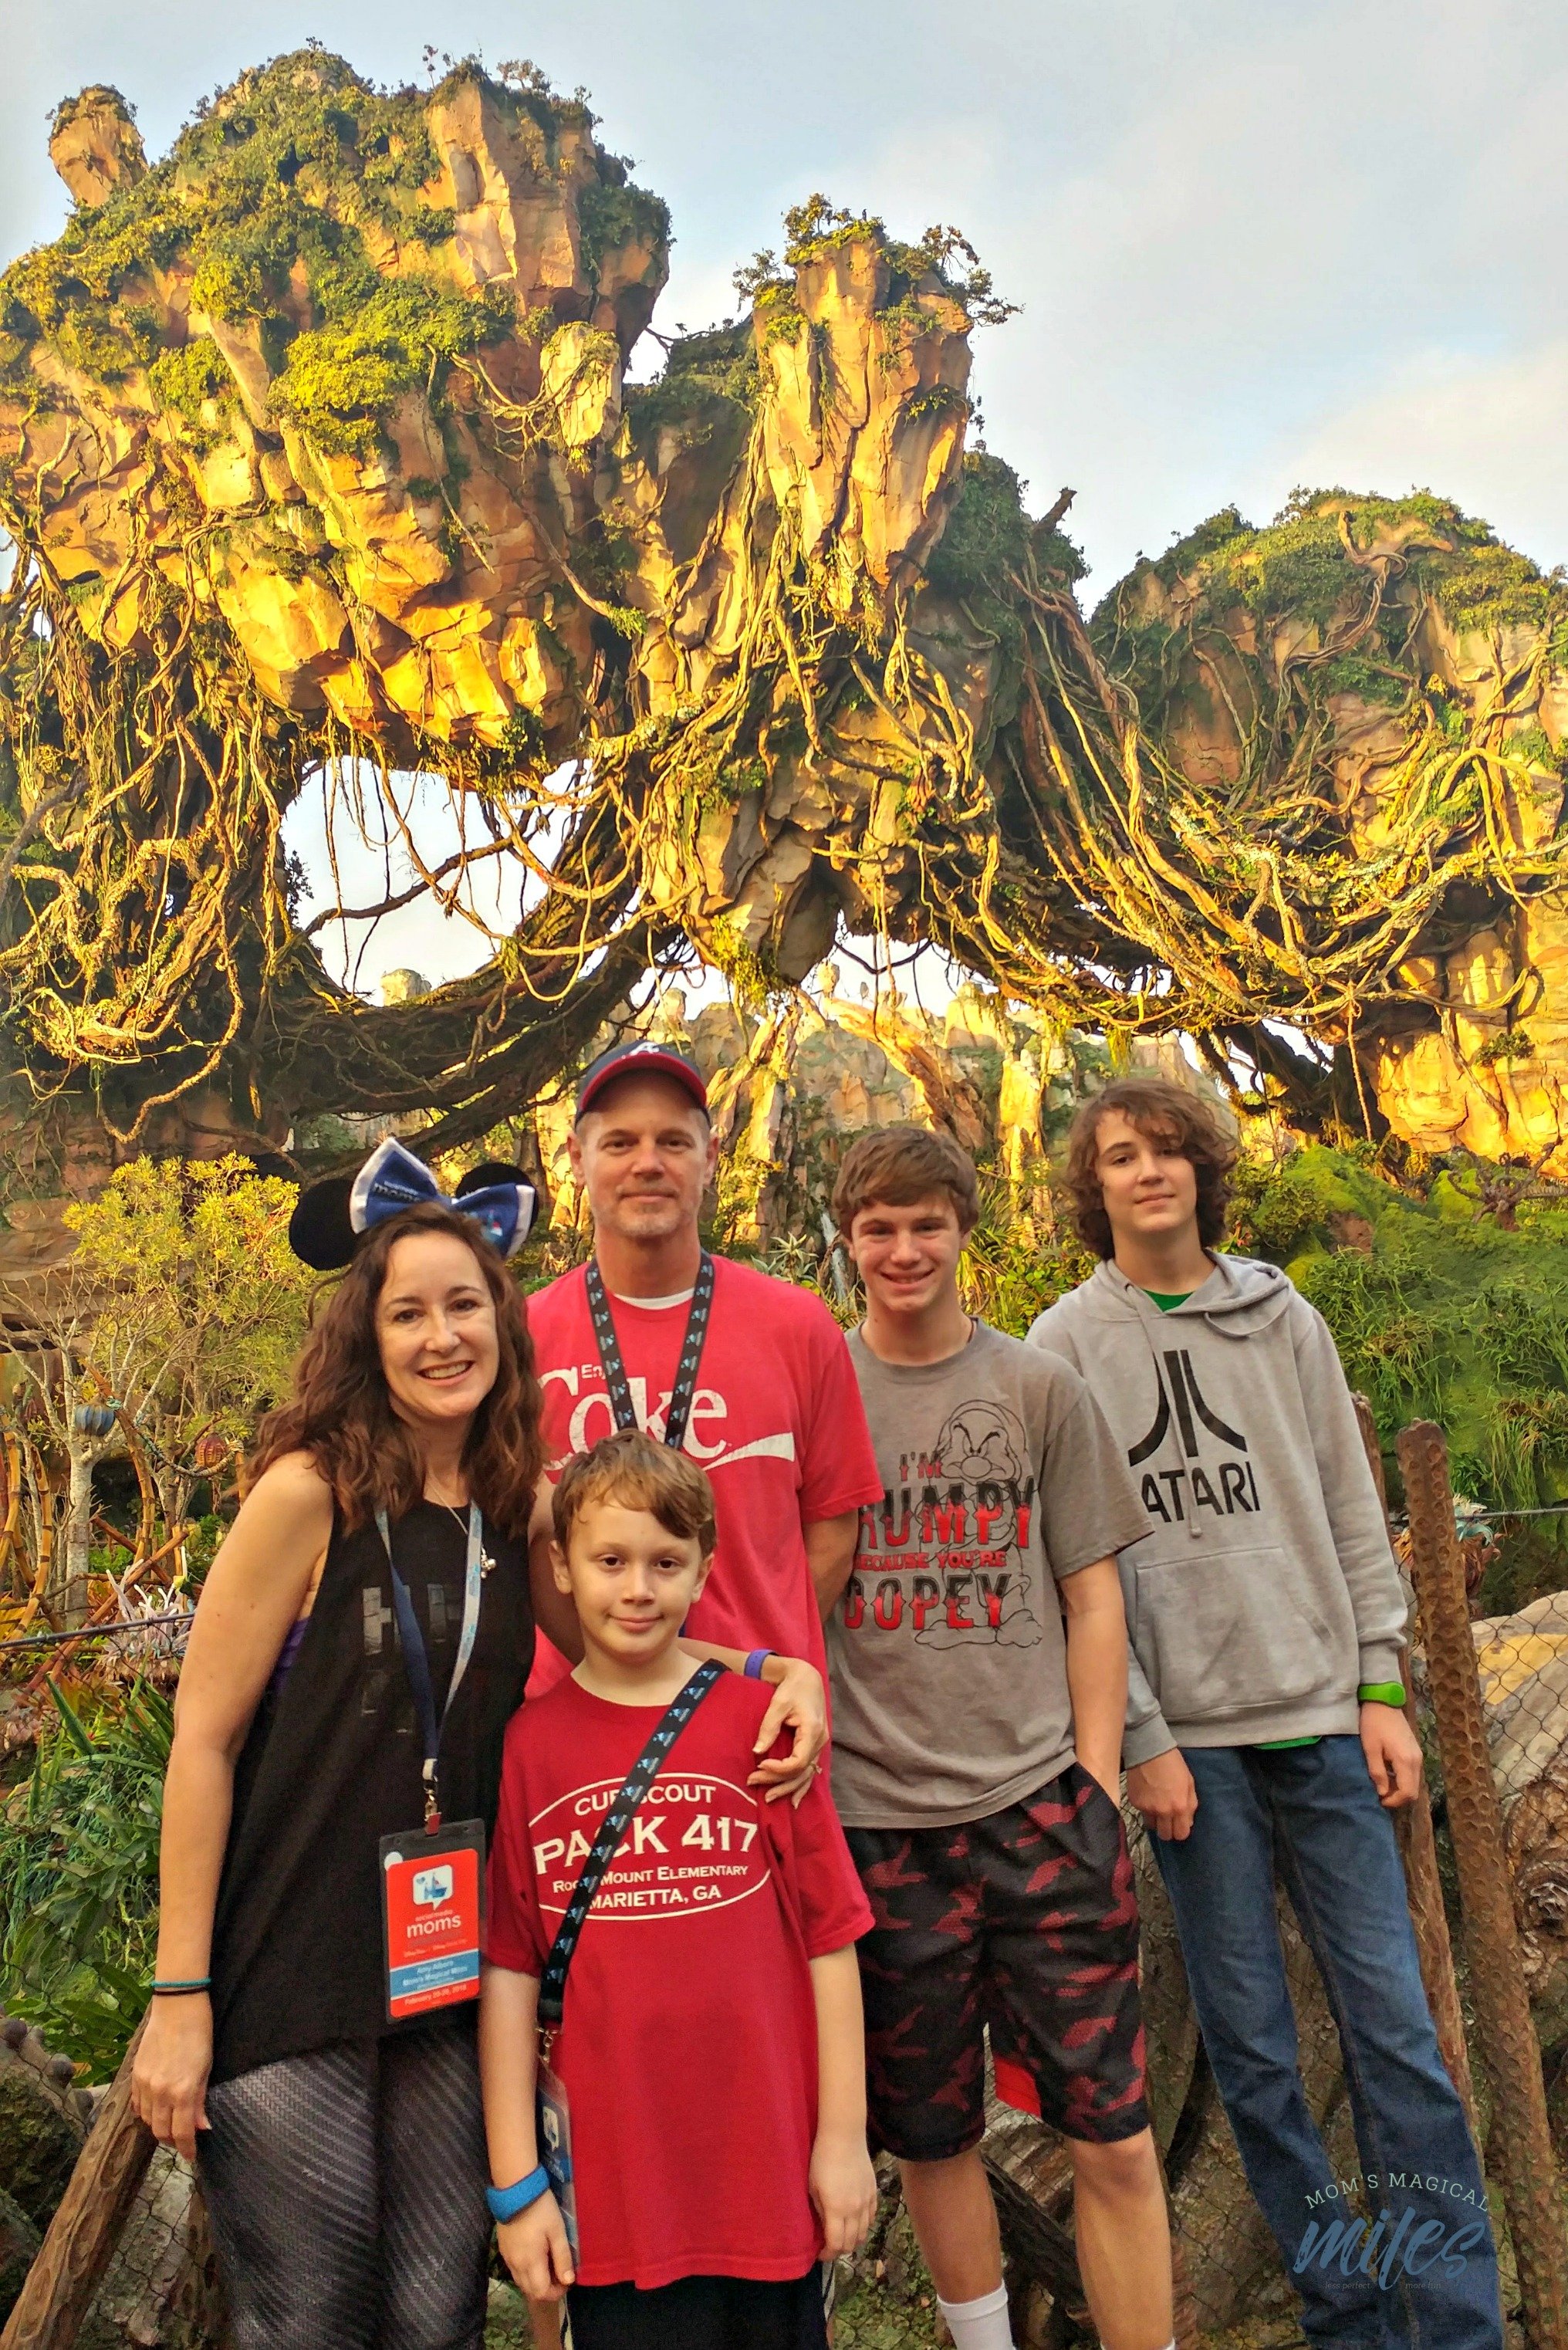 Family togetherness is awesome on a Disney Vacation. But it doesn't have to happen to have a great vacation.